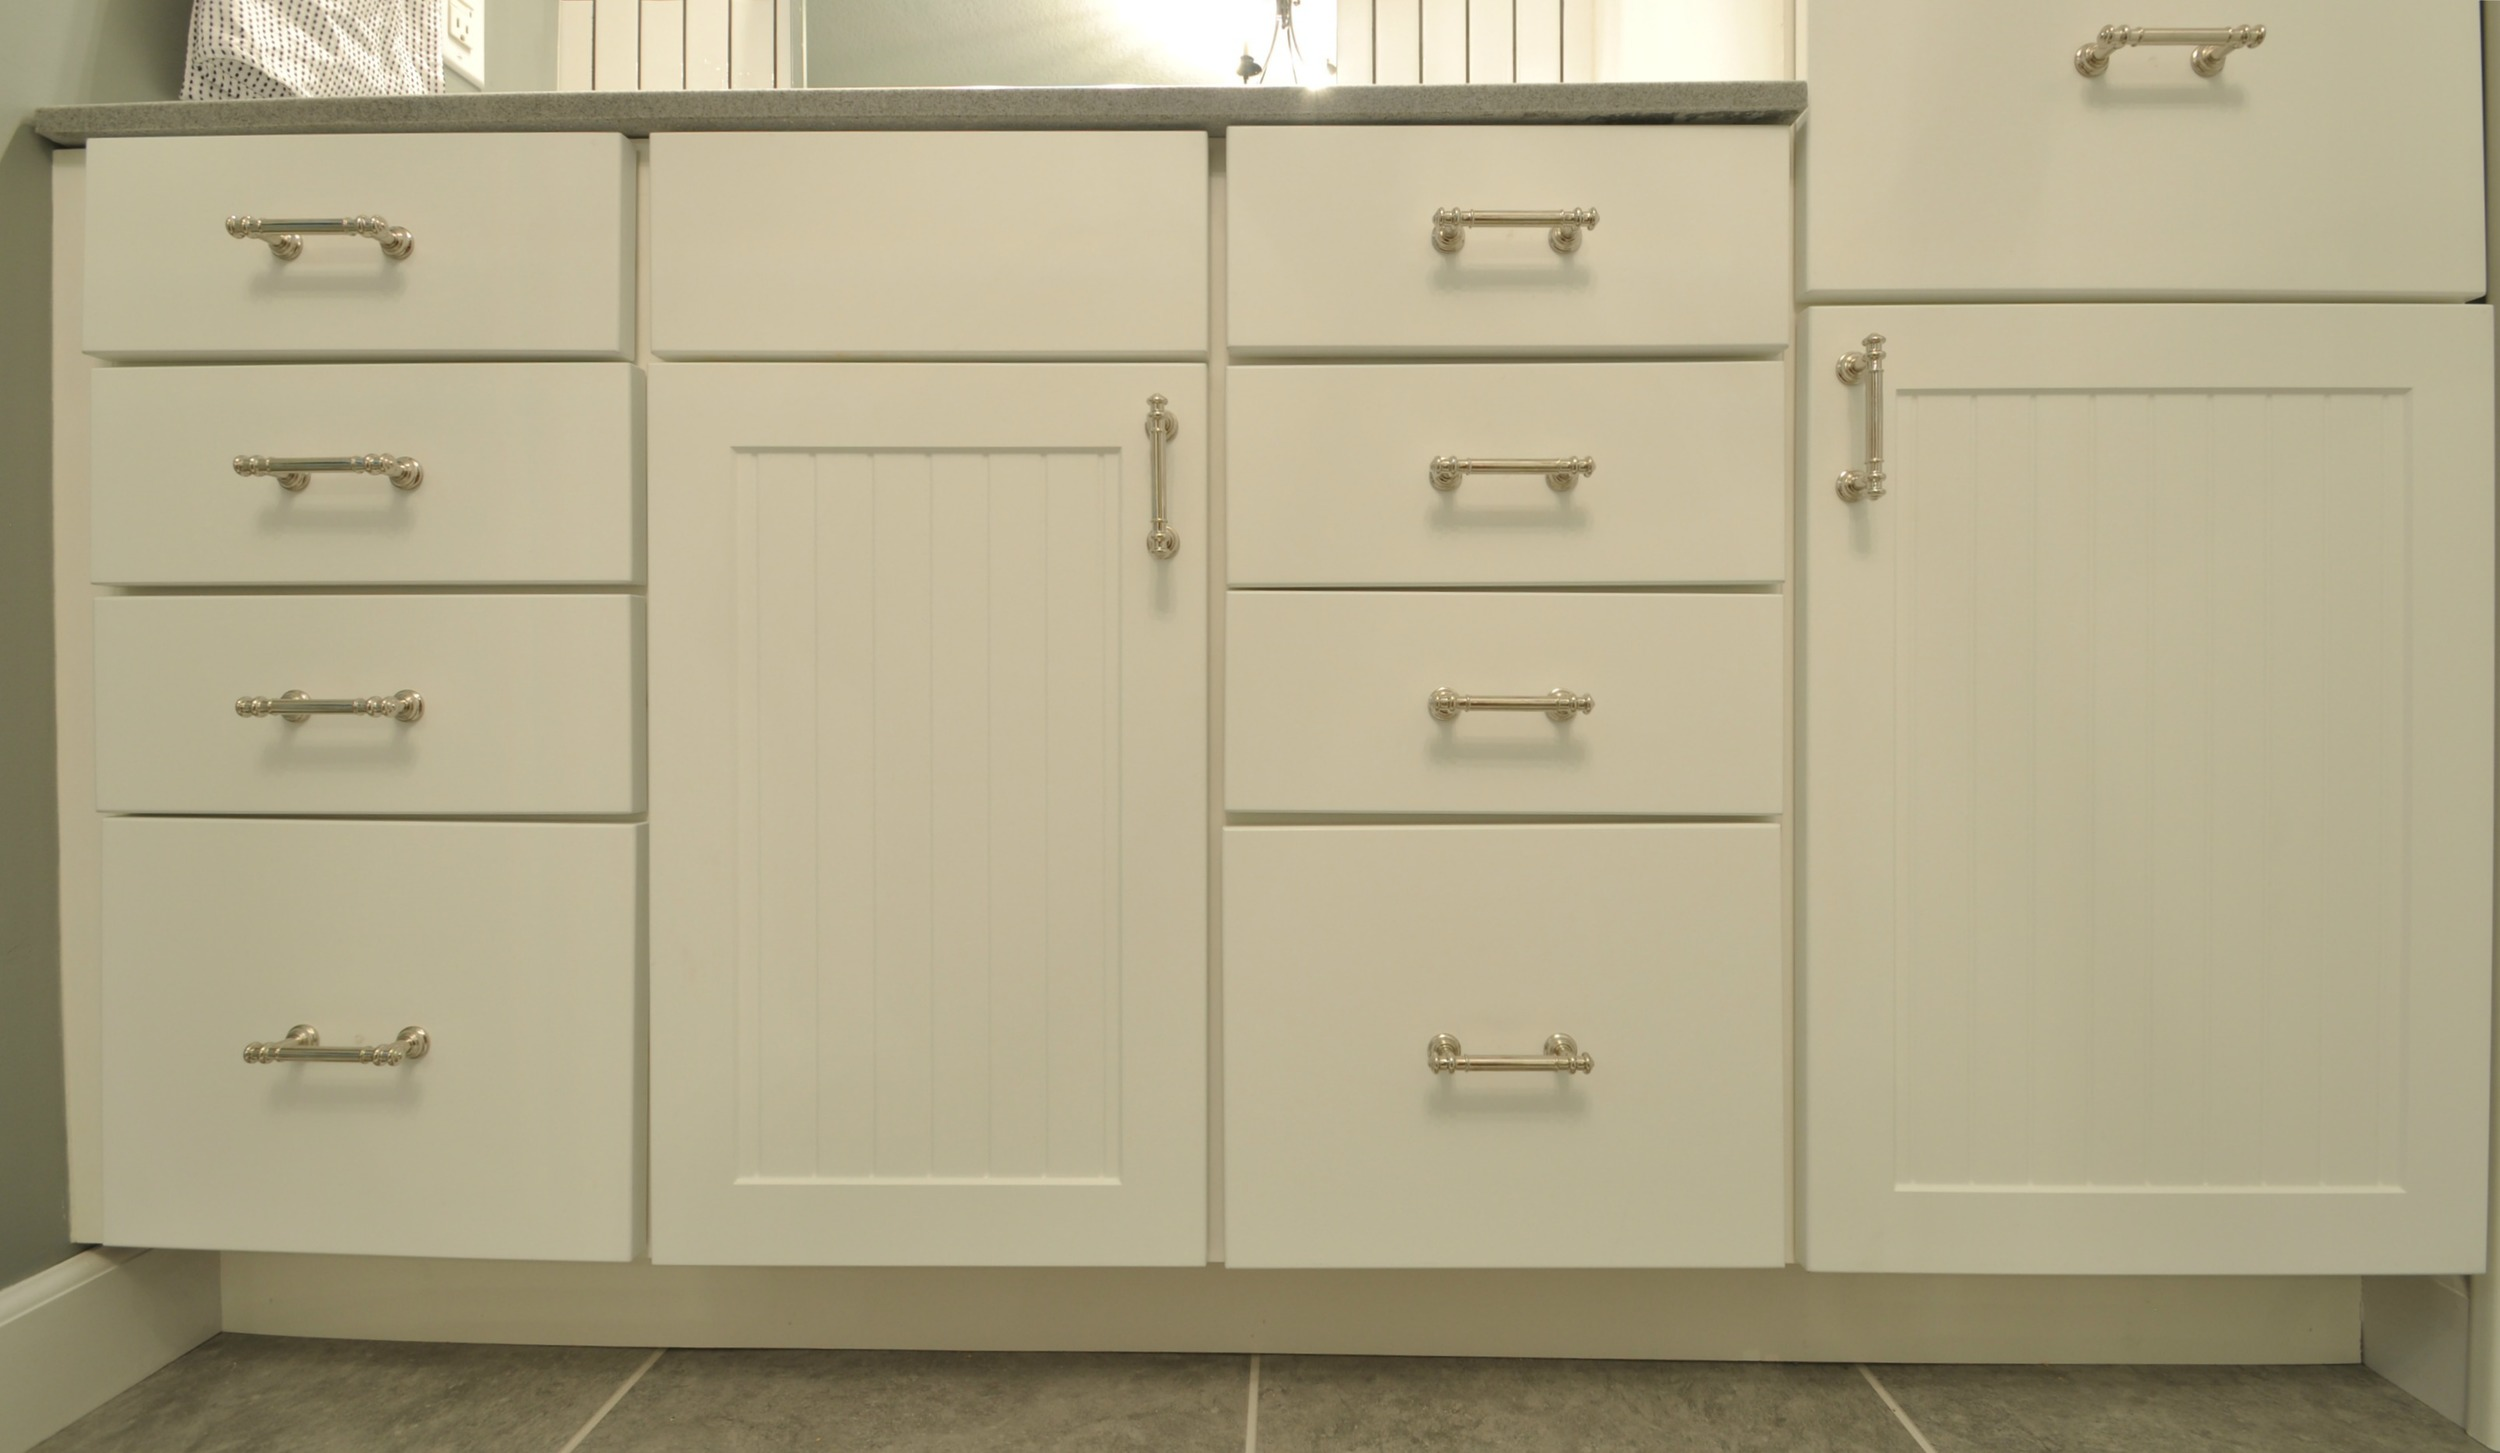 How to Change Cabinet Hardware 2.jpg